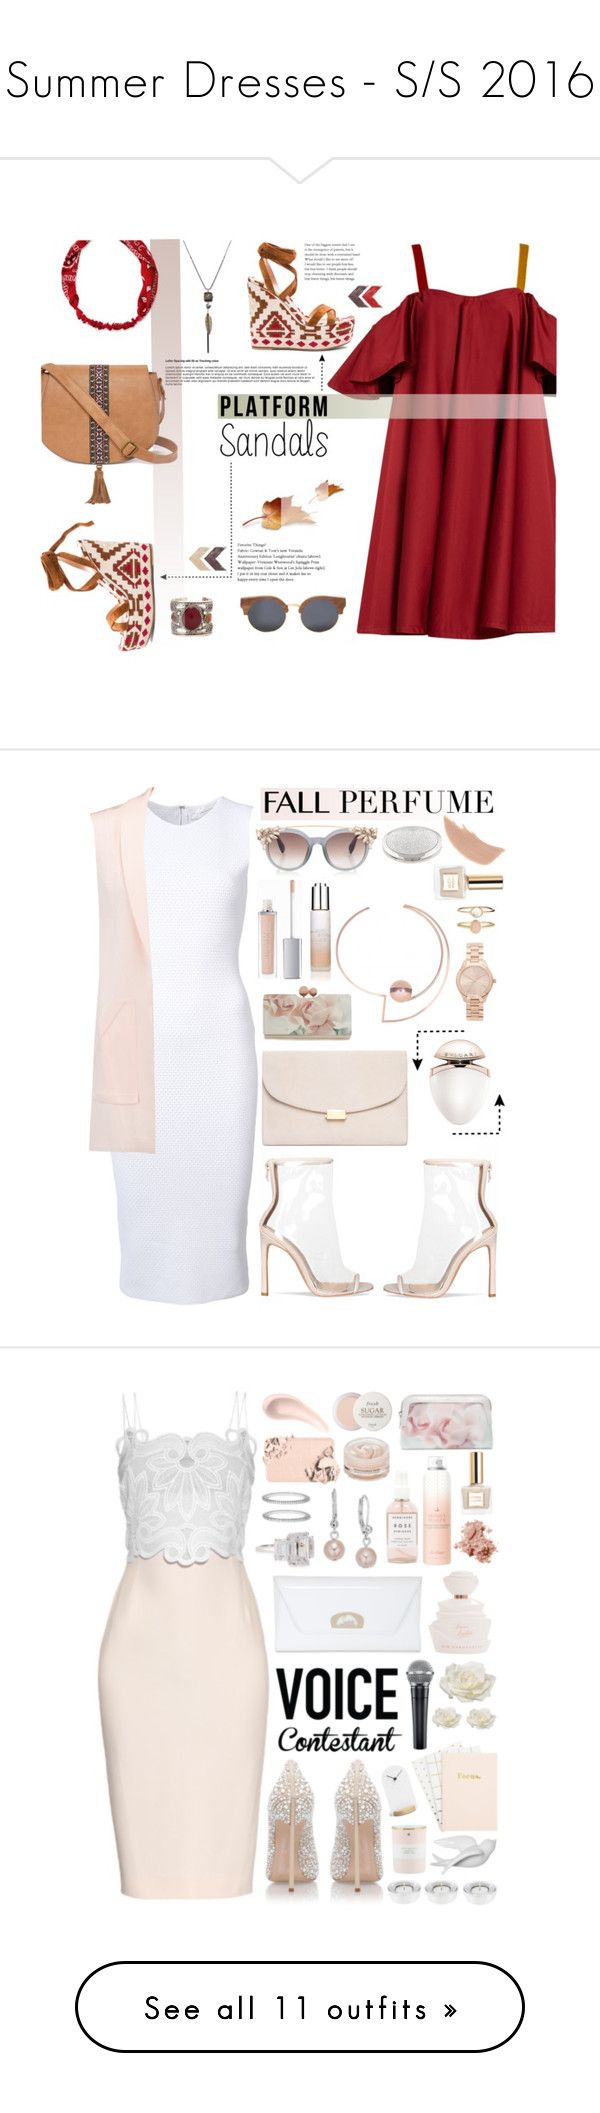 """""""Summer Dresses - S/S 2016"""" by nvoyce ❤ liked on Polyvore featuring Anna October, Gianvito Rossi, T-shirt & Jeans, Carole, Finlay & Co., platforms, Victoria Beckham, Rebecca Minkoff, Mansur Gavriel and Ted Baker"""